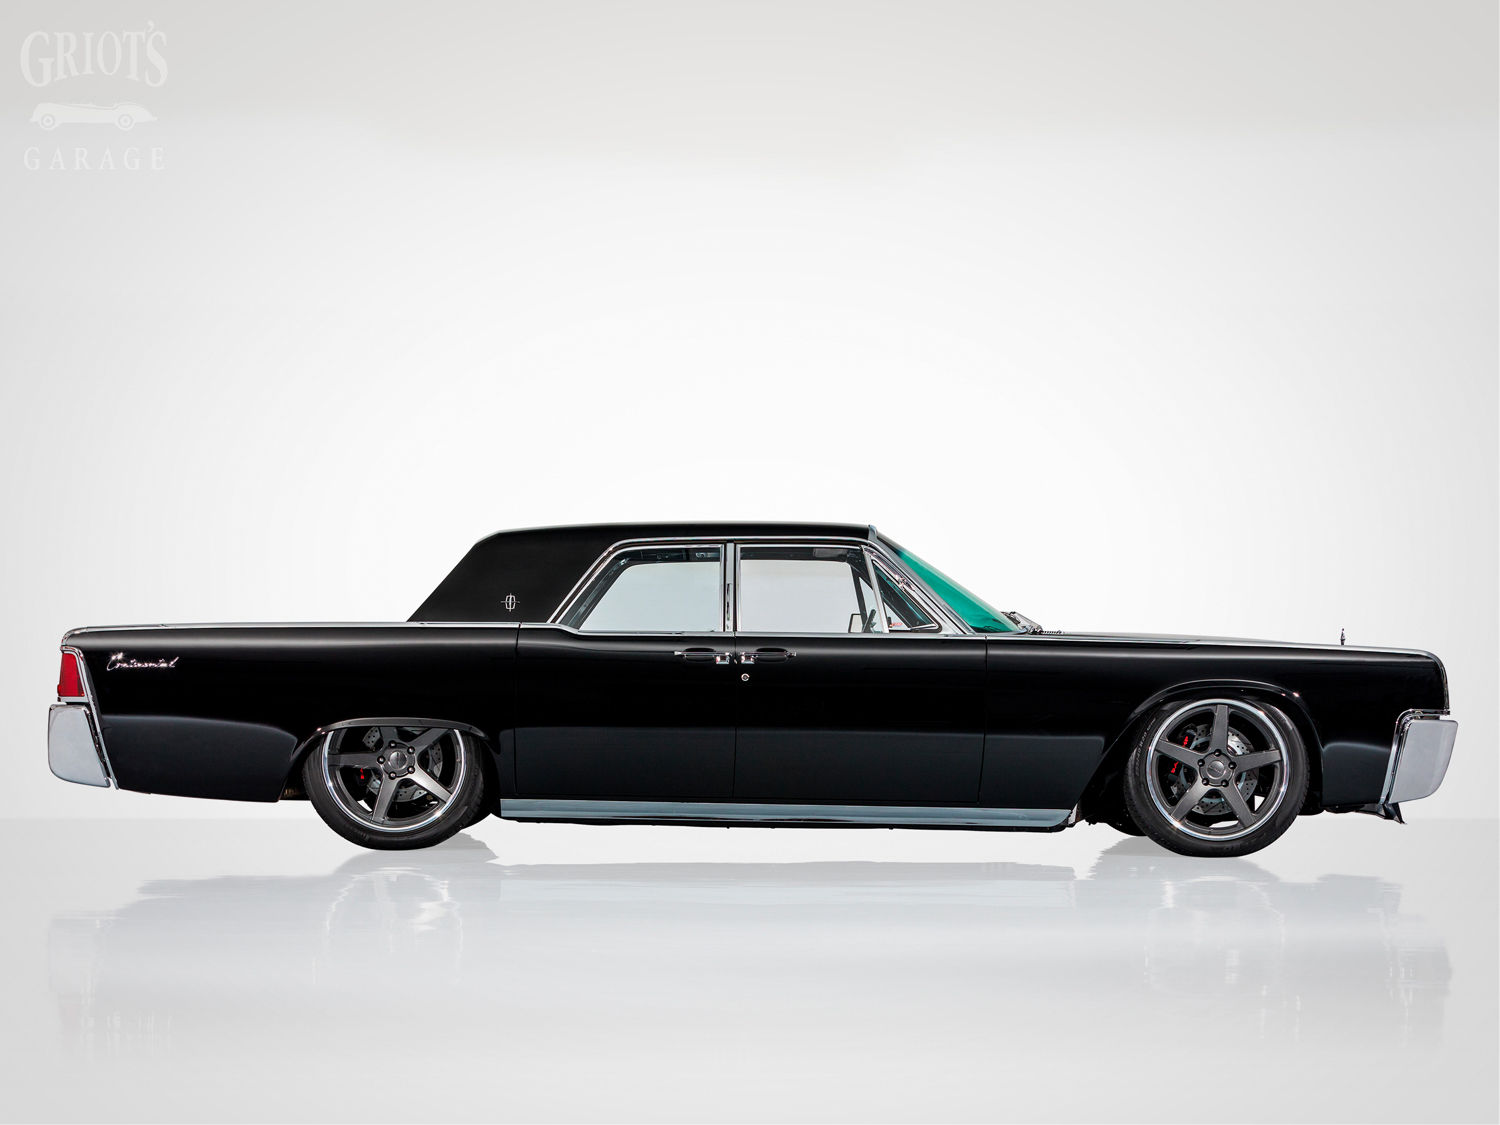 1963 Lincoln Continental | Nick Griot's J-Rod & Custom 1963 Lincoln Continental on Forgeline CF3C Wheels